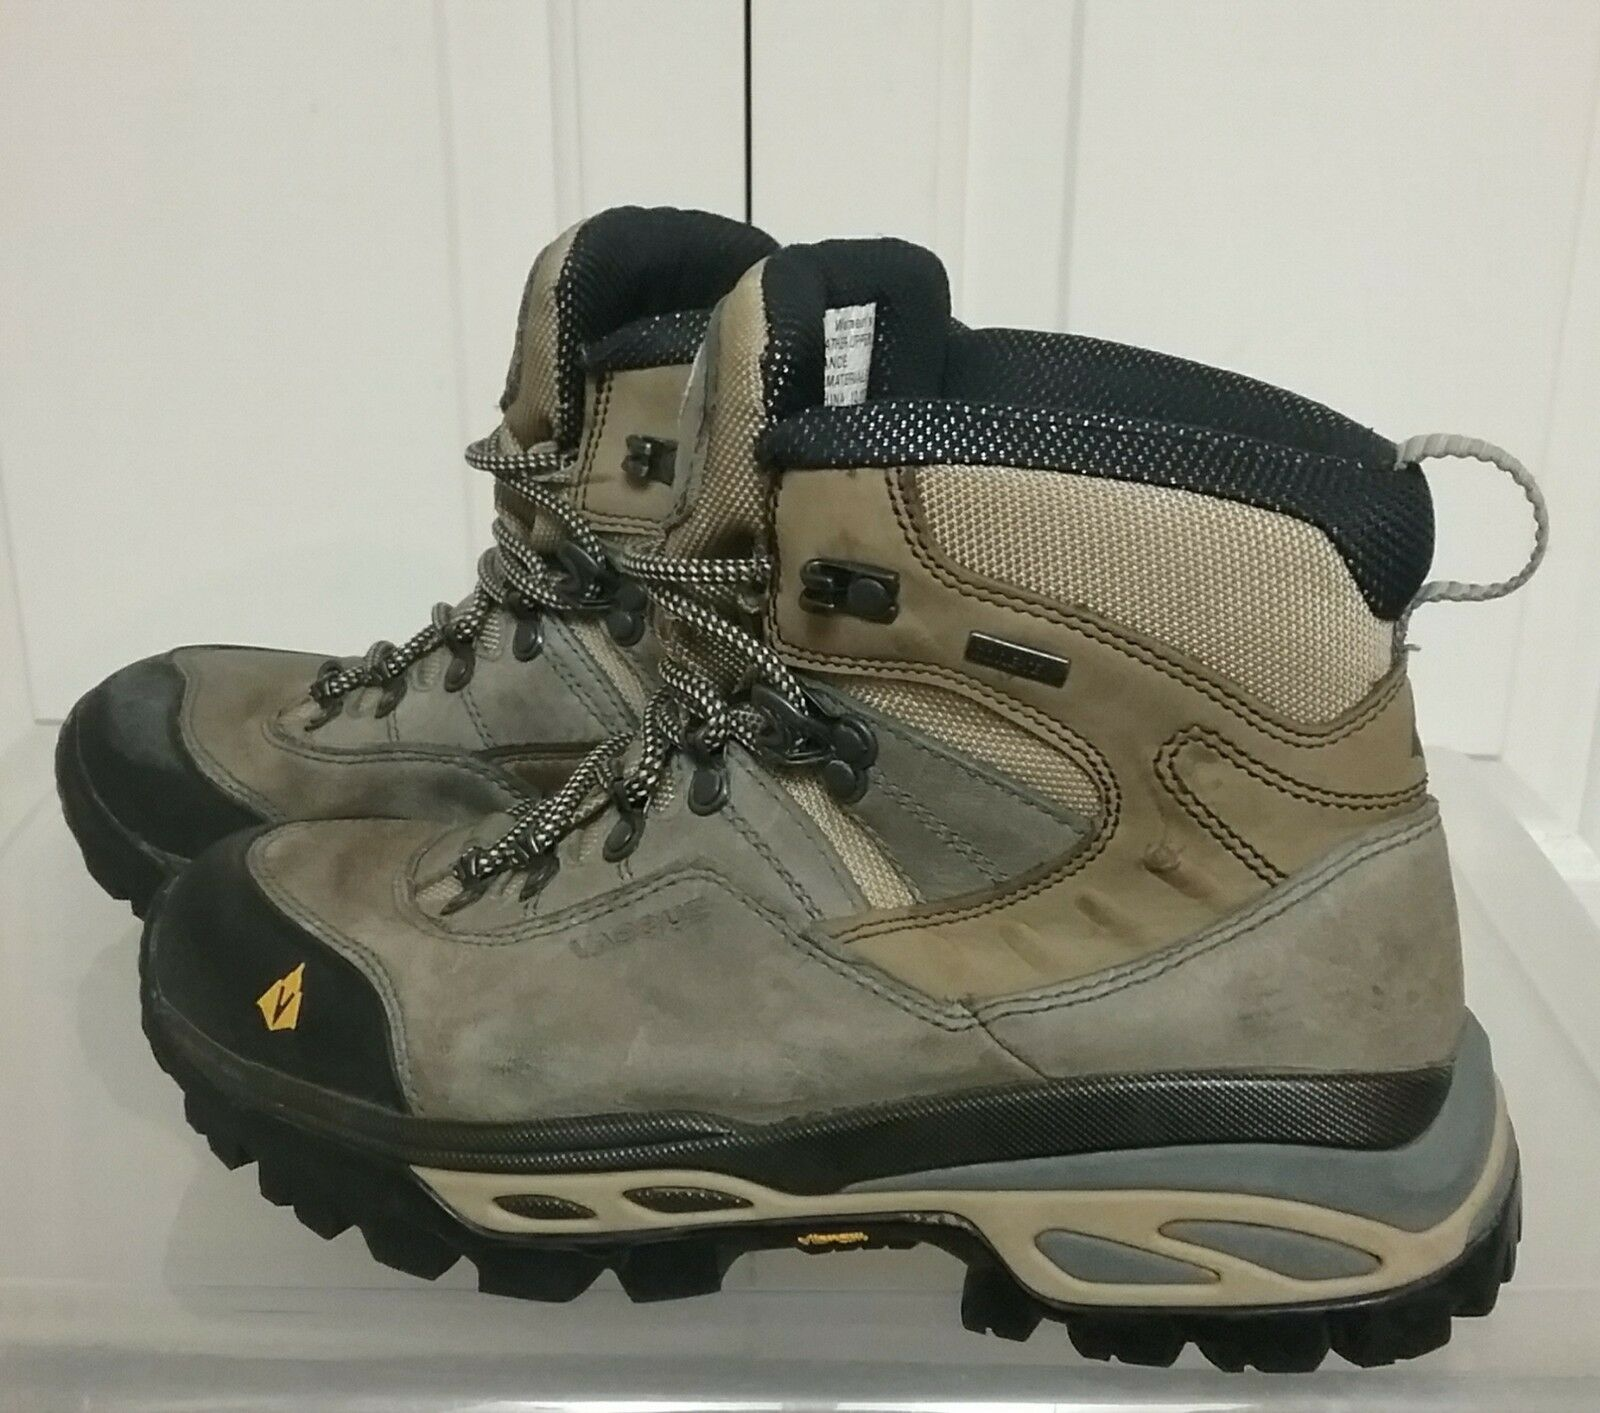 Vasque Women's Hiking Boots Leather Upper Gore-Tex Lace Up 7155 Size 10M